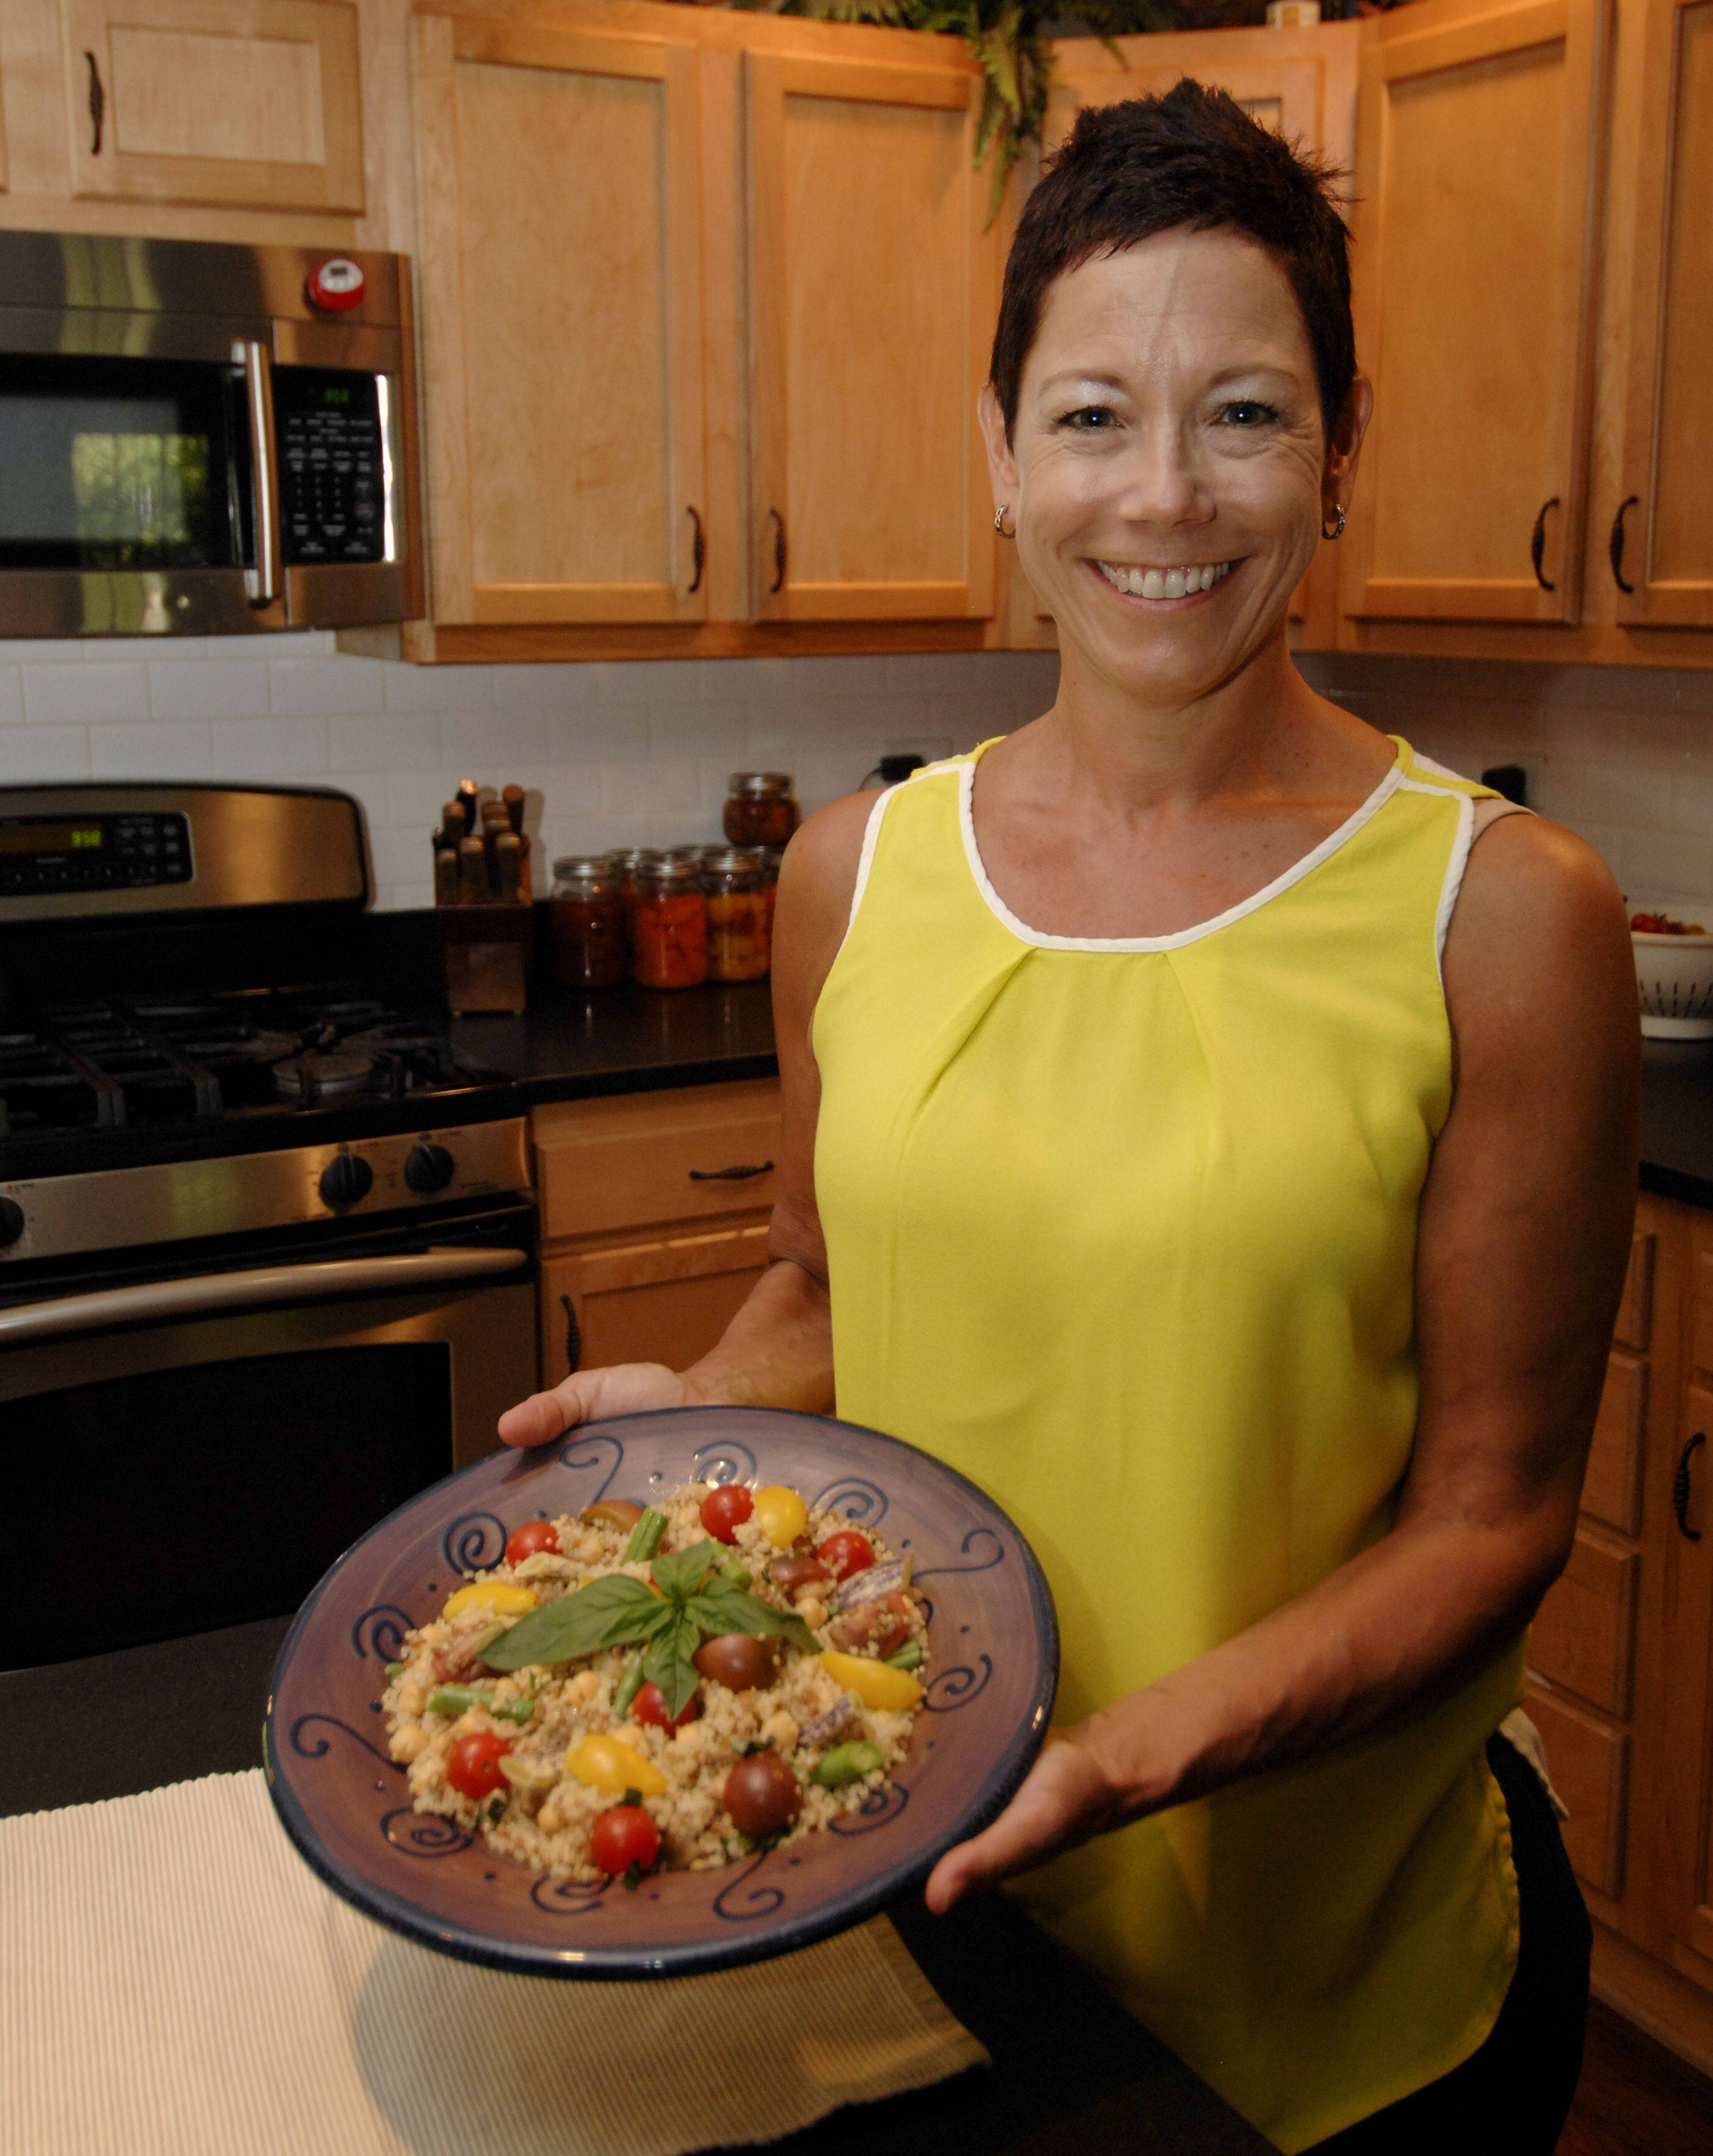 Not losing sight of her first goal to feed her family healthy meals, Lori Motyka impressed judges with sardine-topped flatbread and cod caponata.